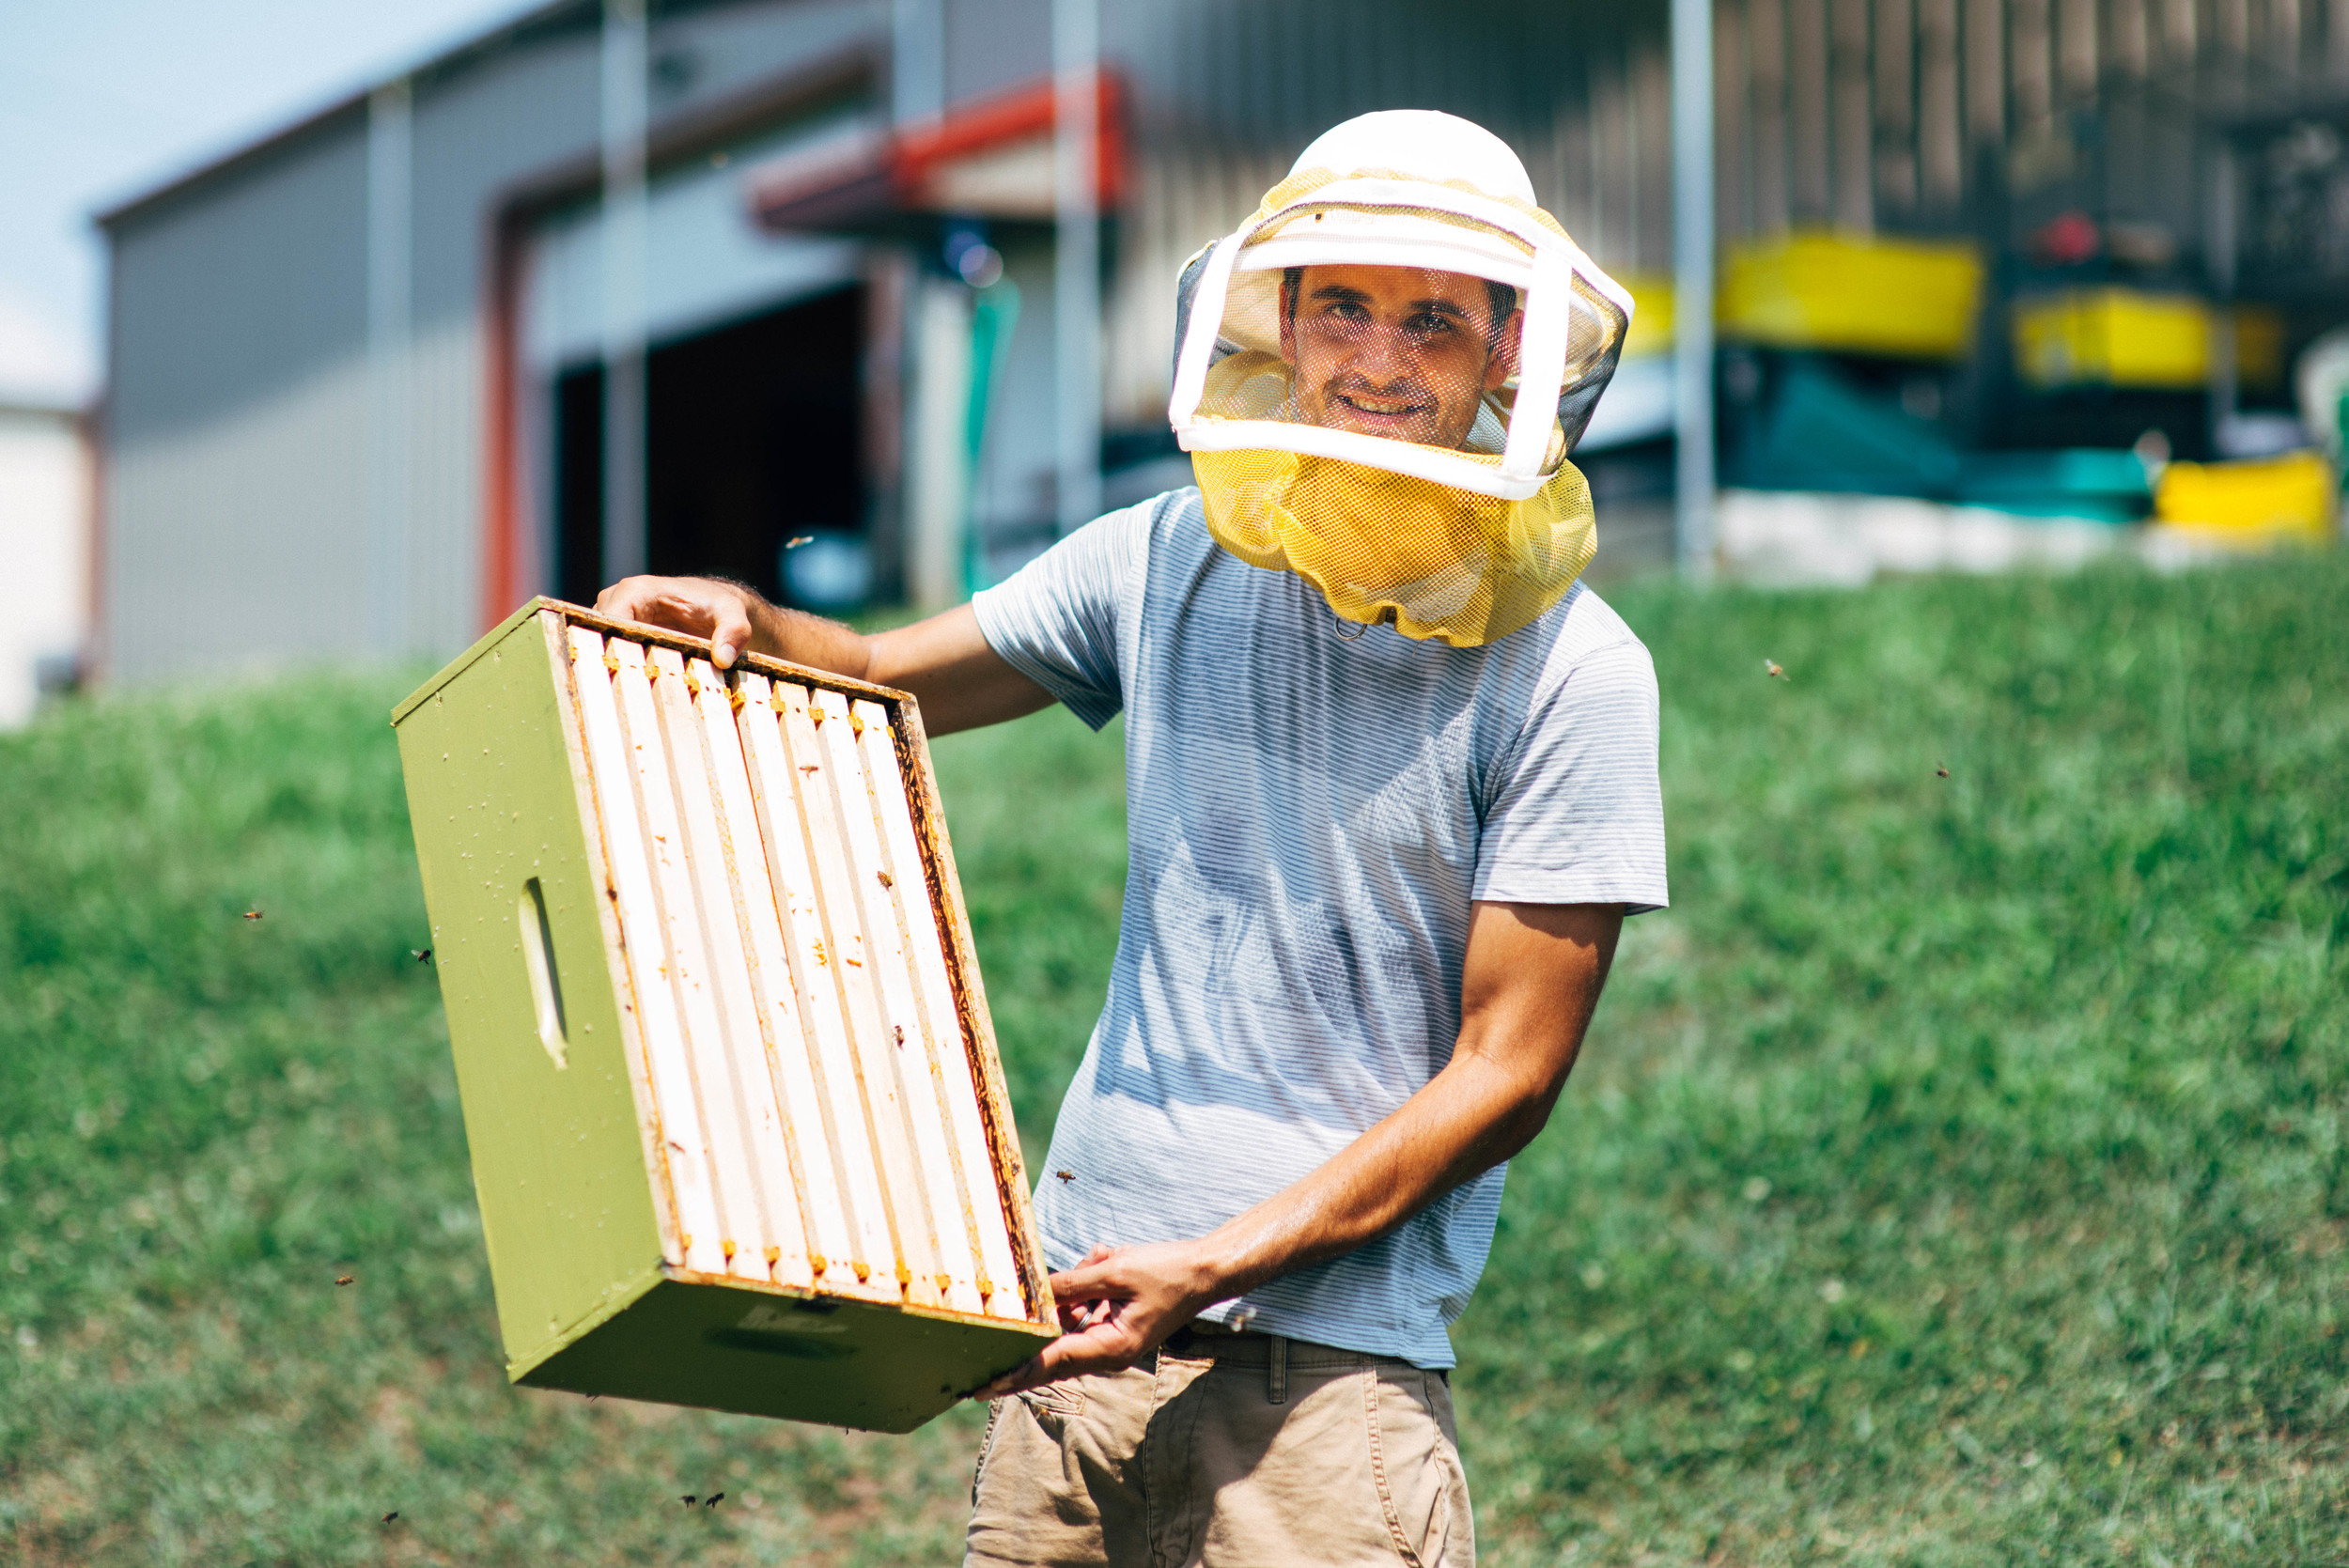 Our bee operation, spearheaded by Jeff Sherrod (pictured above), began last summer with three hives and has now expanded to six. Bees are the world's most important pollinator of food crops, and it is estimated that one third of the food that we consume each day relies on pollination primarily from bees. In addition to pollinating our community garden, our first honey harvest produced over 200 pounds of honey.